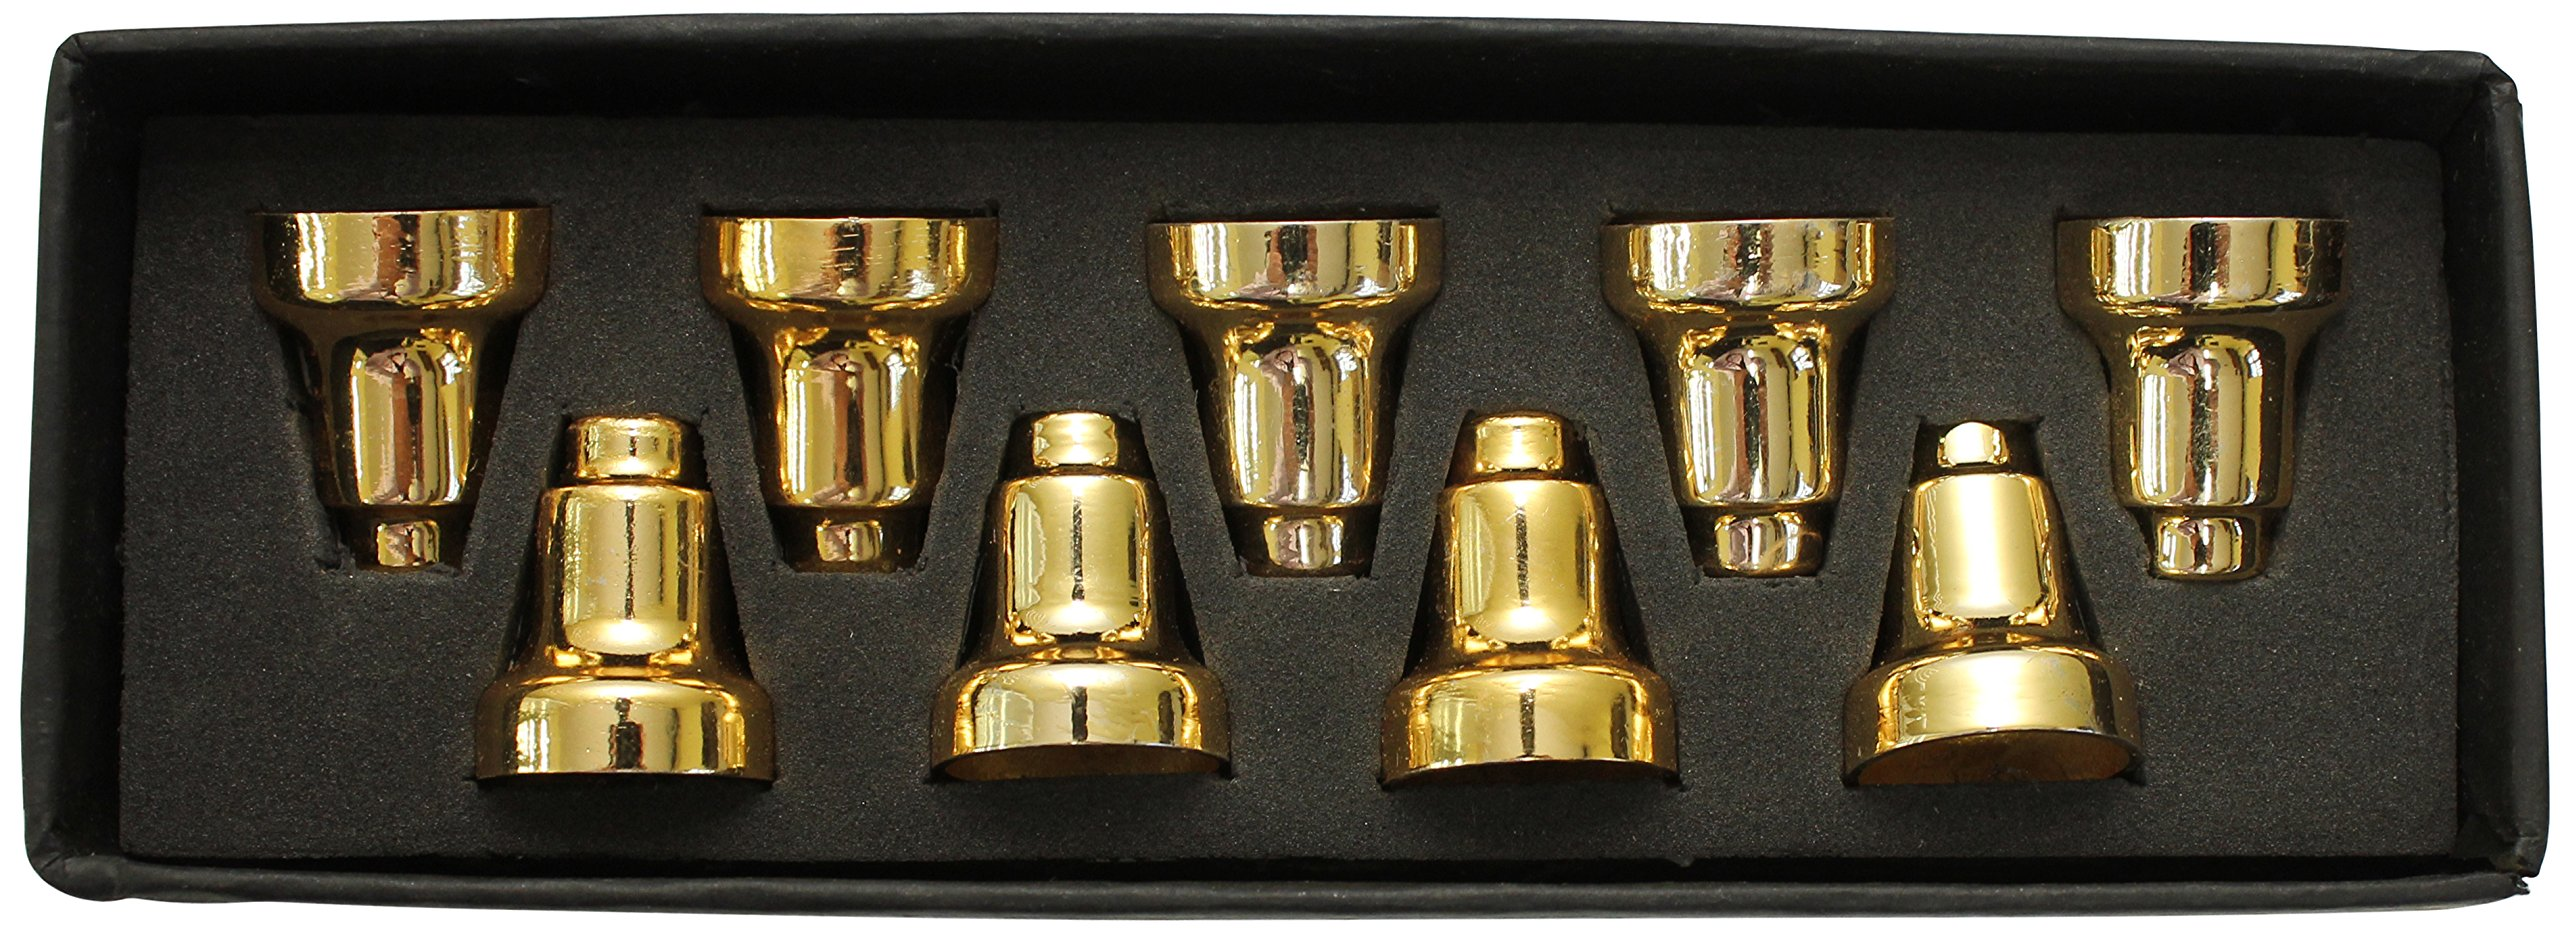 Majestic Giftware MNDC-B 1'' Brass Menorah Drip Cups Candelabra by Majestic Giftware